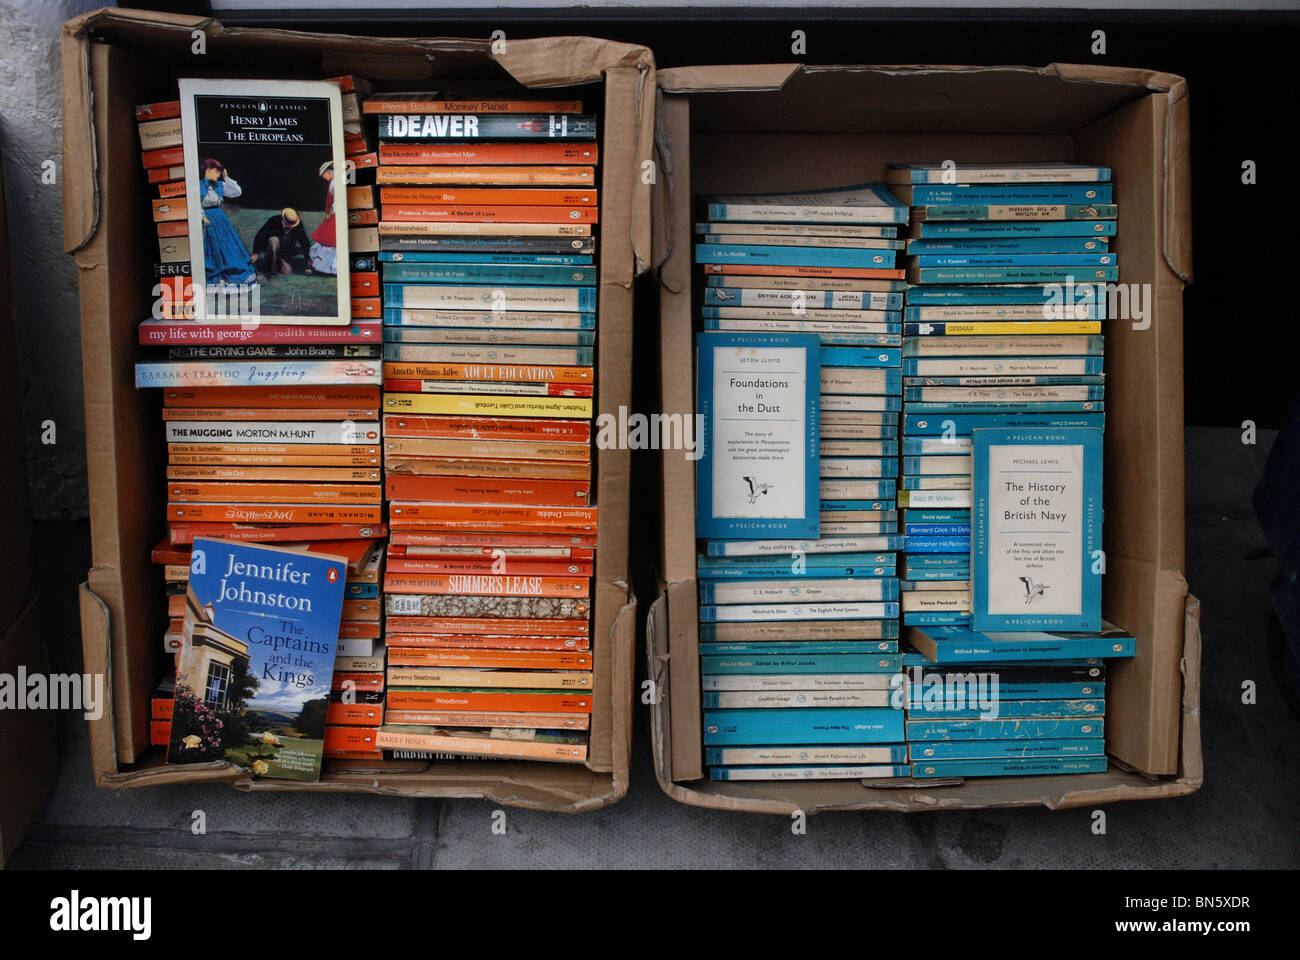 Penguin and Pelican paperbacks at a secondhand bookshop in Edinburgh. Stock Photo